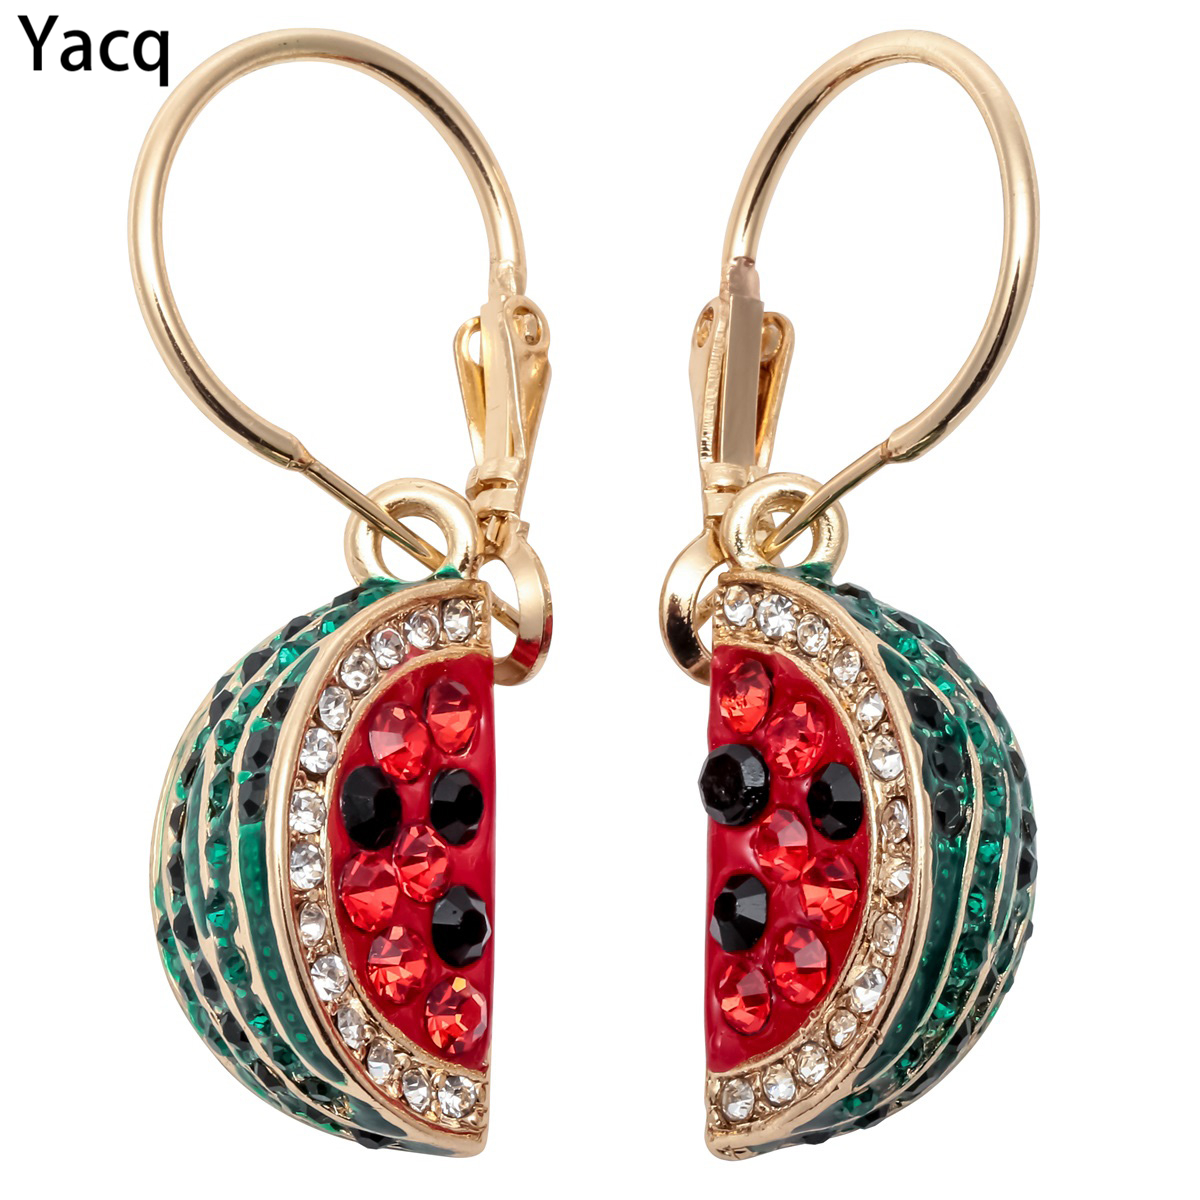 YACQ Watermelon Dangle Drop Earrings Women Red Fashion Jewelry Gifts Mom Crystal Charm Gold Silver Plated ED01 Dropshipping yoursfs leverback earrings 18k white rose gold plated fashion jewelry women square crystal dangle drop earrings